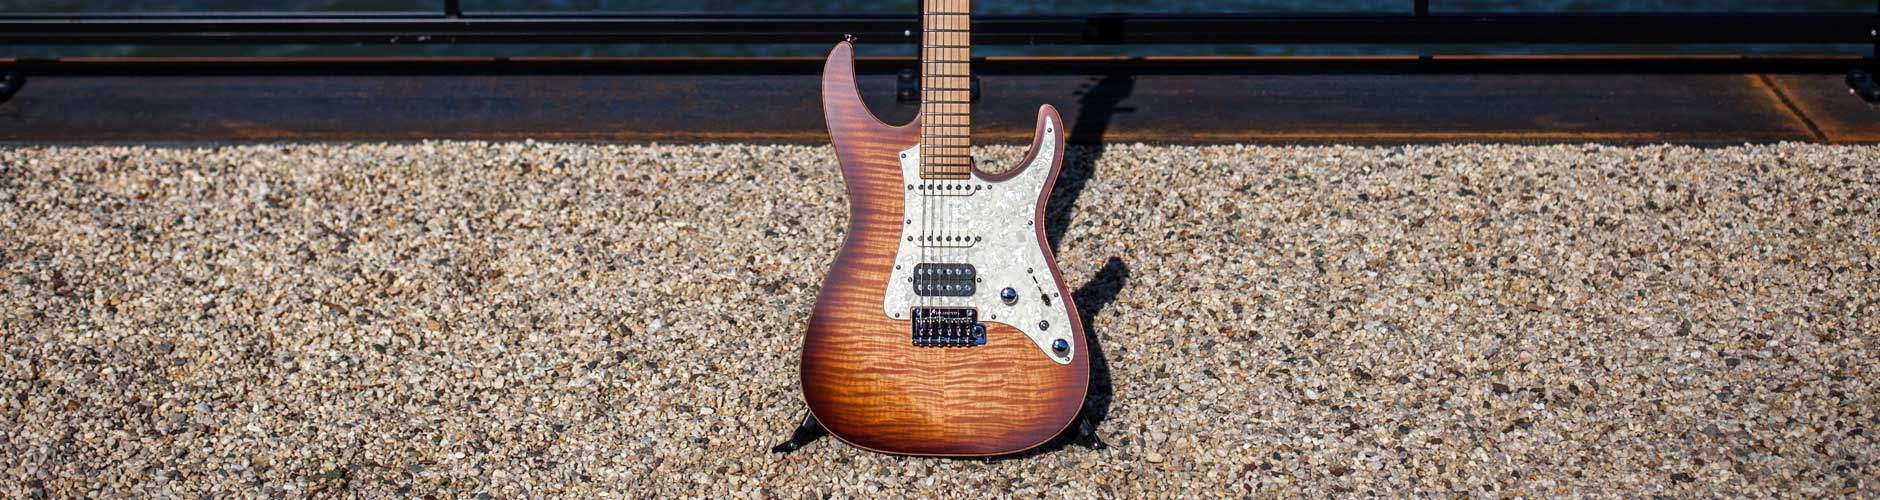 Tom Anderson Guitars At The Music Zoo